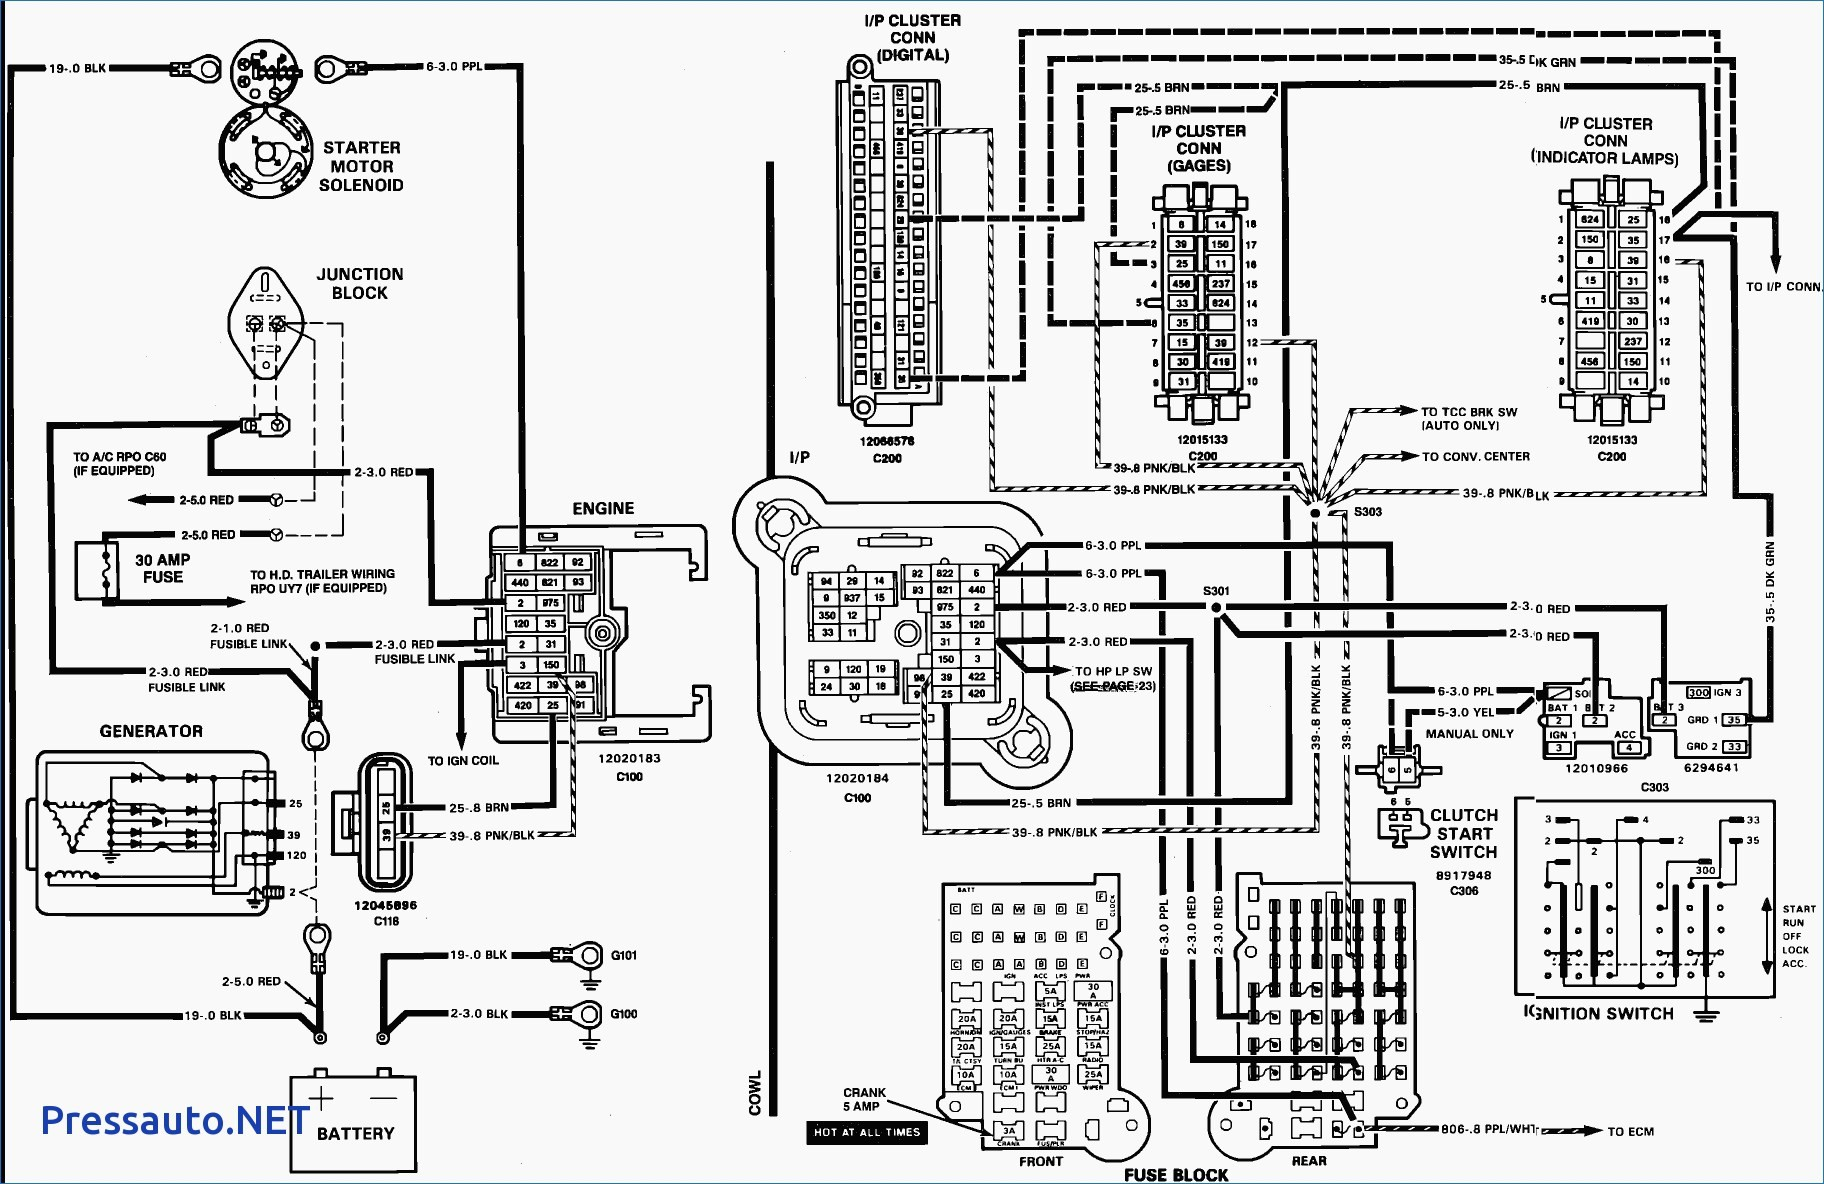 chevrolet s10 engine diagram online schematic diagram u2022 rh tentenny com Chevy S10 Parts Diagram 94 S10 Wiring Diagram